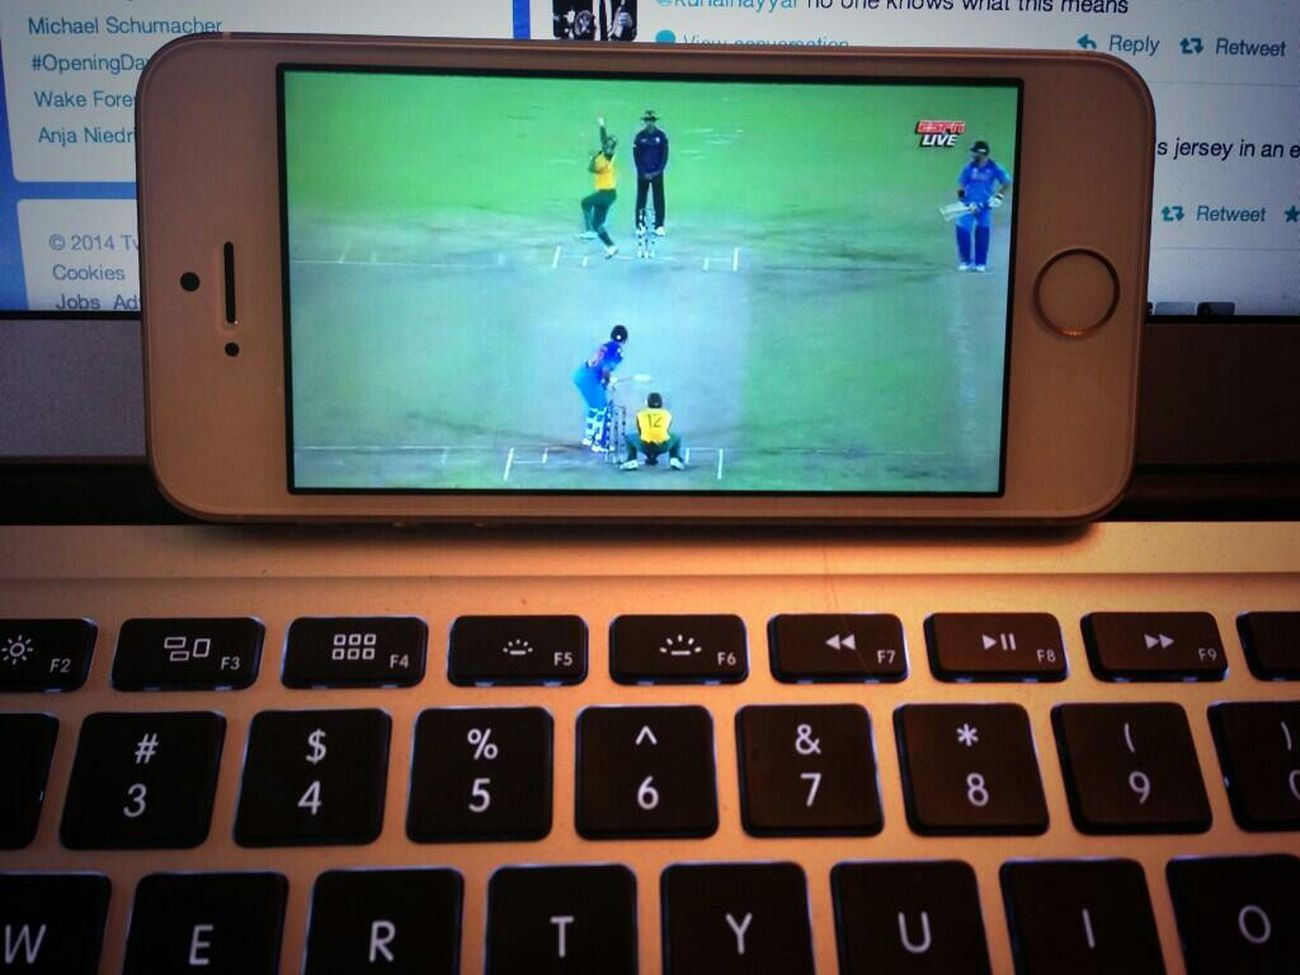 Iphone 5 Mac Book Watching Cricket India